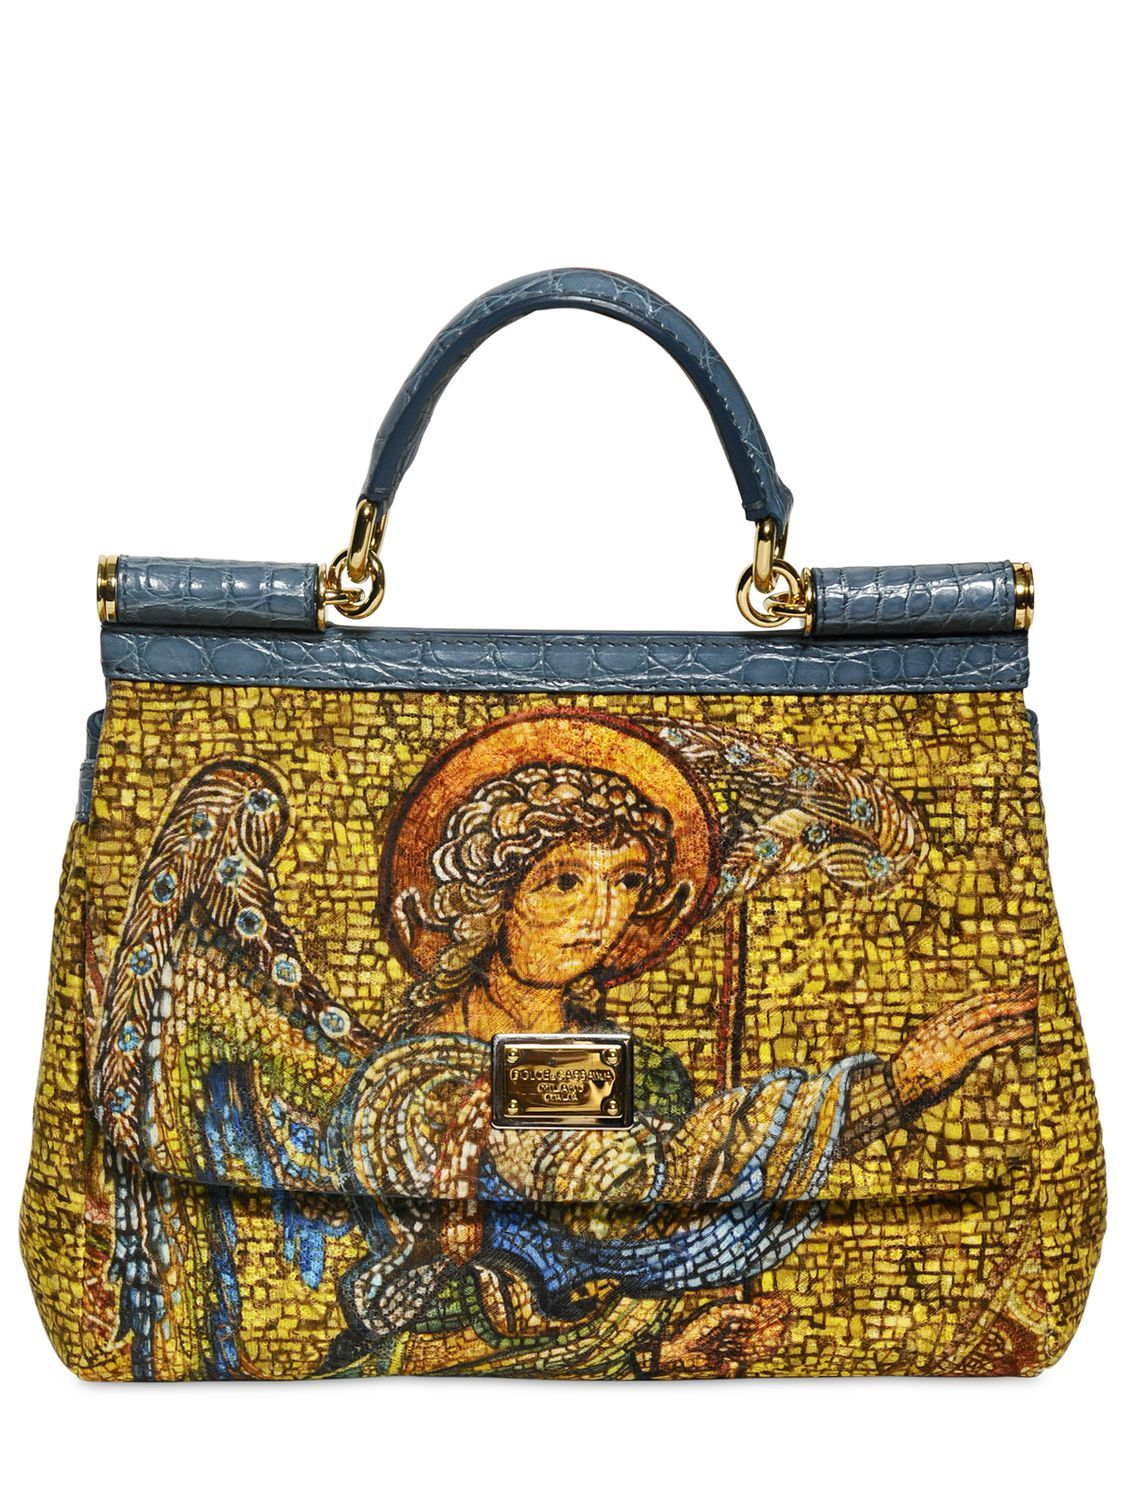 d74f94c6cc DOLCE   GABBANA - EMBROIDERED ANGEL MISS SICILY BAG - LUISAVIAROMA - LUXURY  SHOPPING WORLDWIDE SHIPPING - FLORENCE